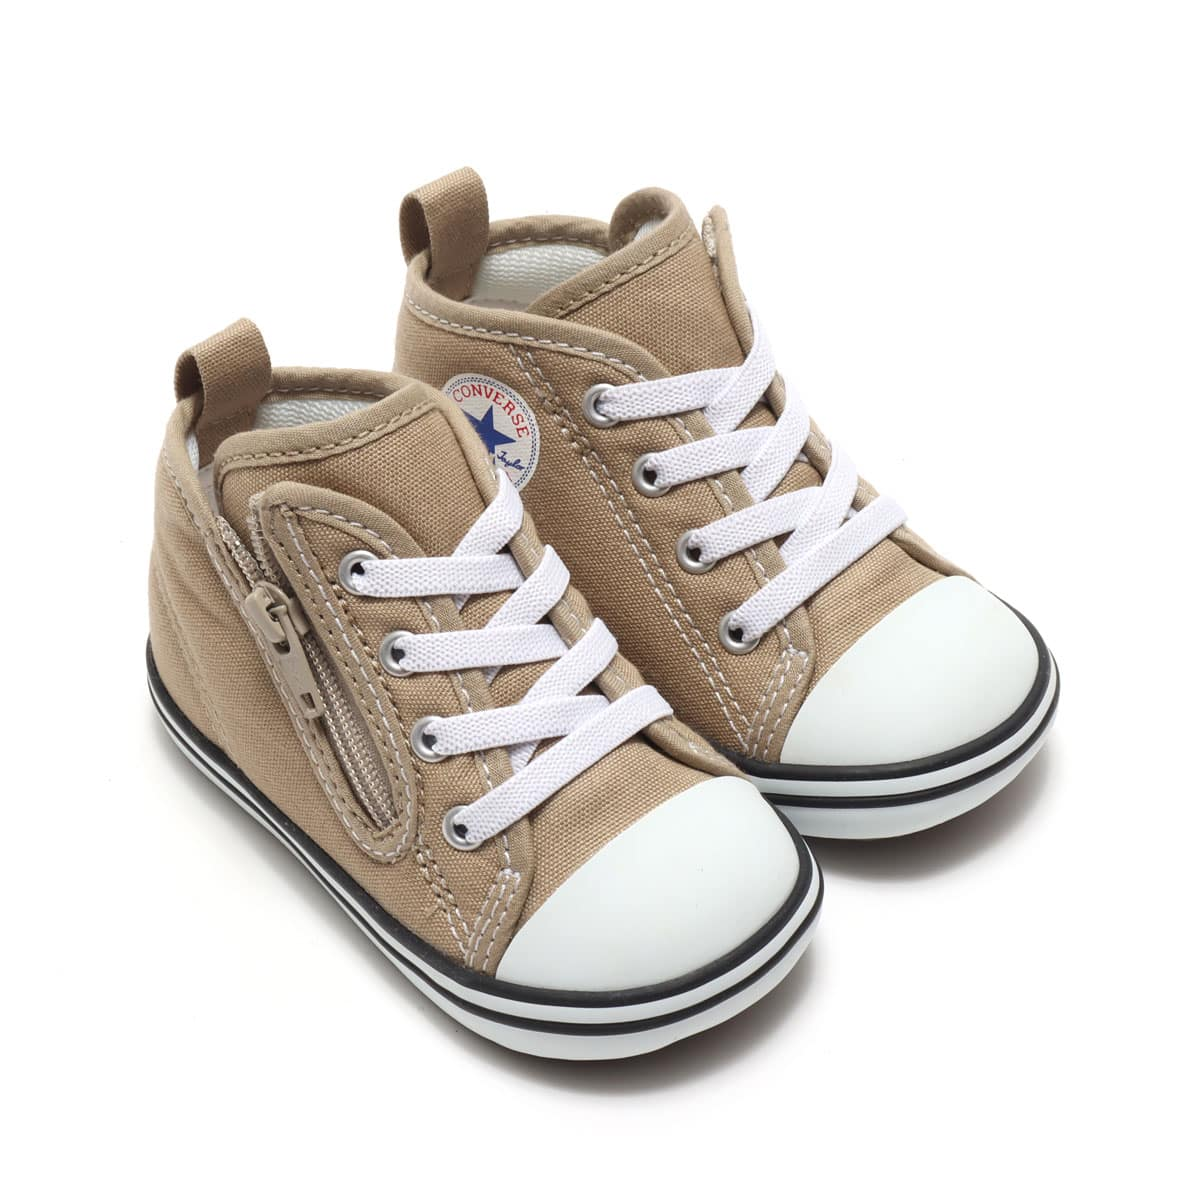 CONVERSE BABY ALL STAR N COLORS Z BIEGE 21SS-I_photo_large